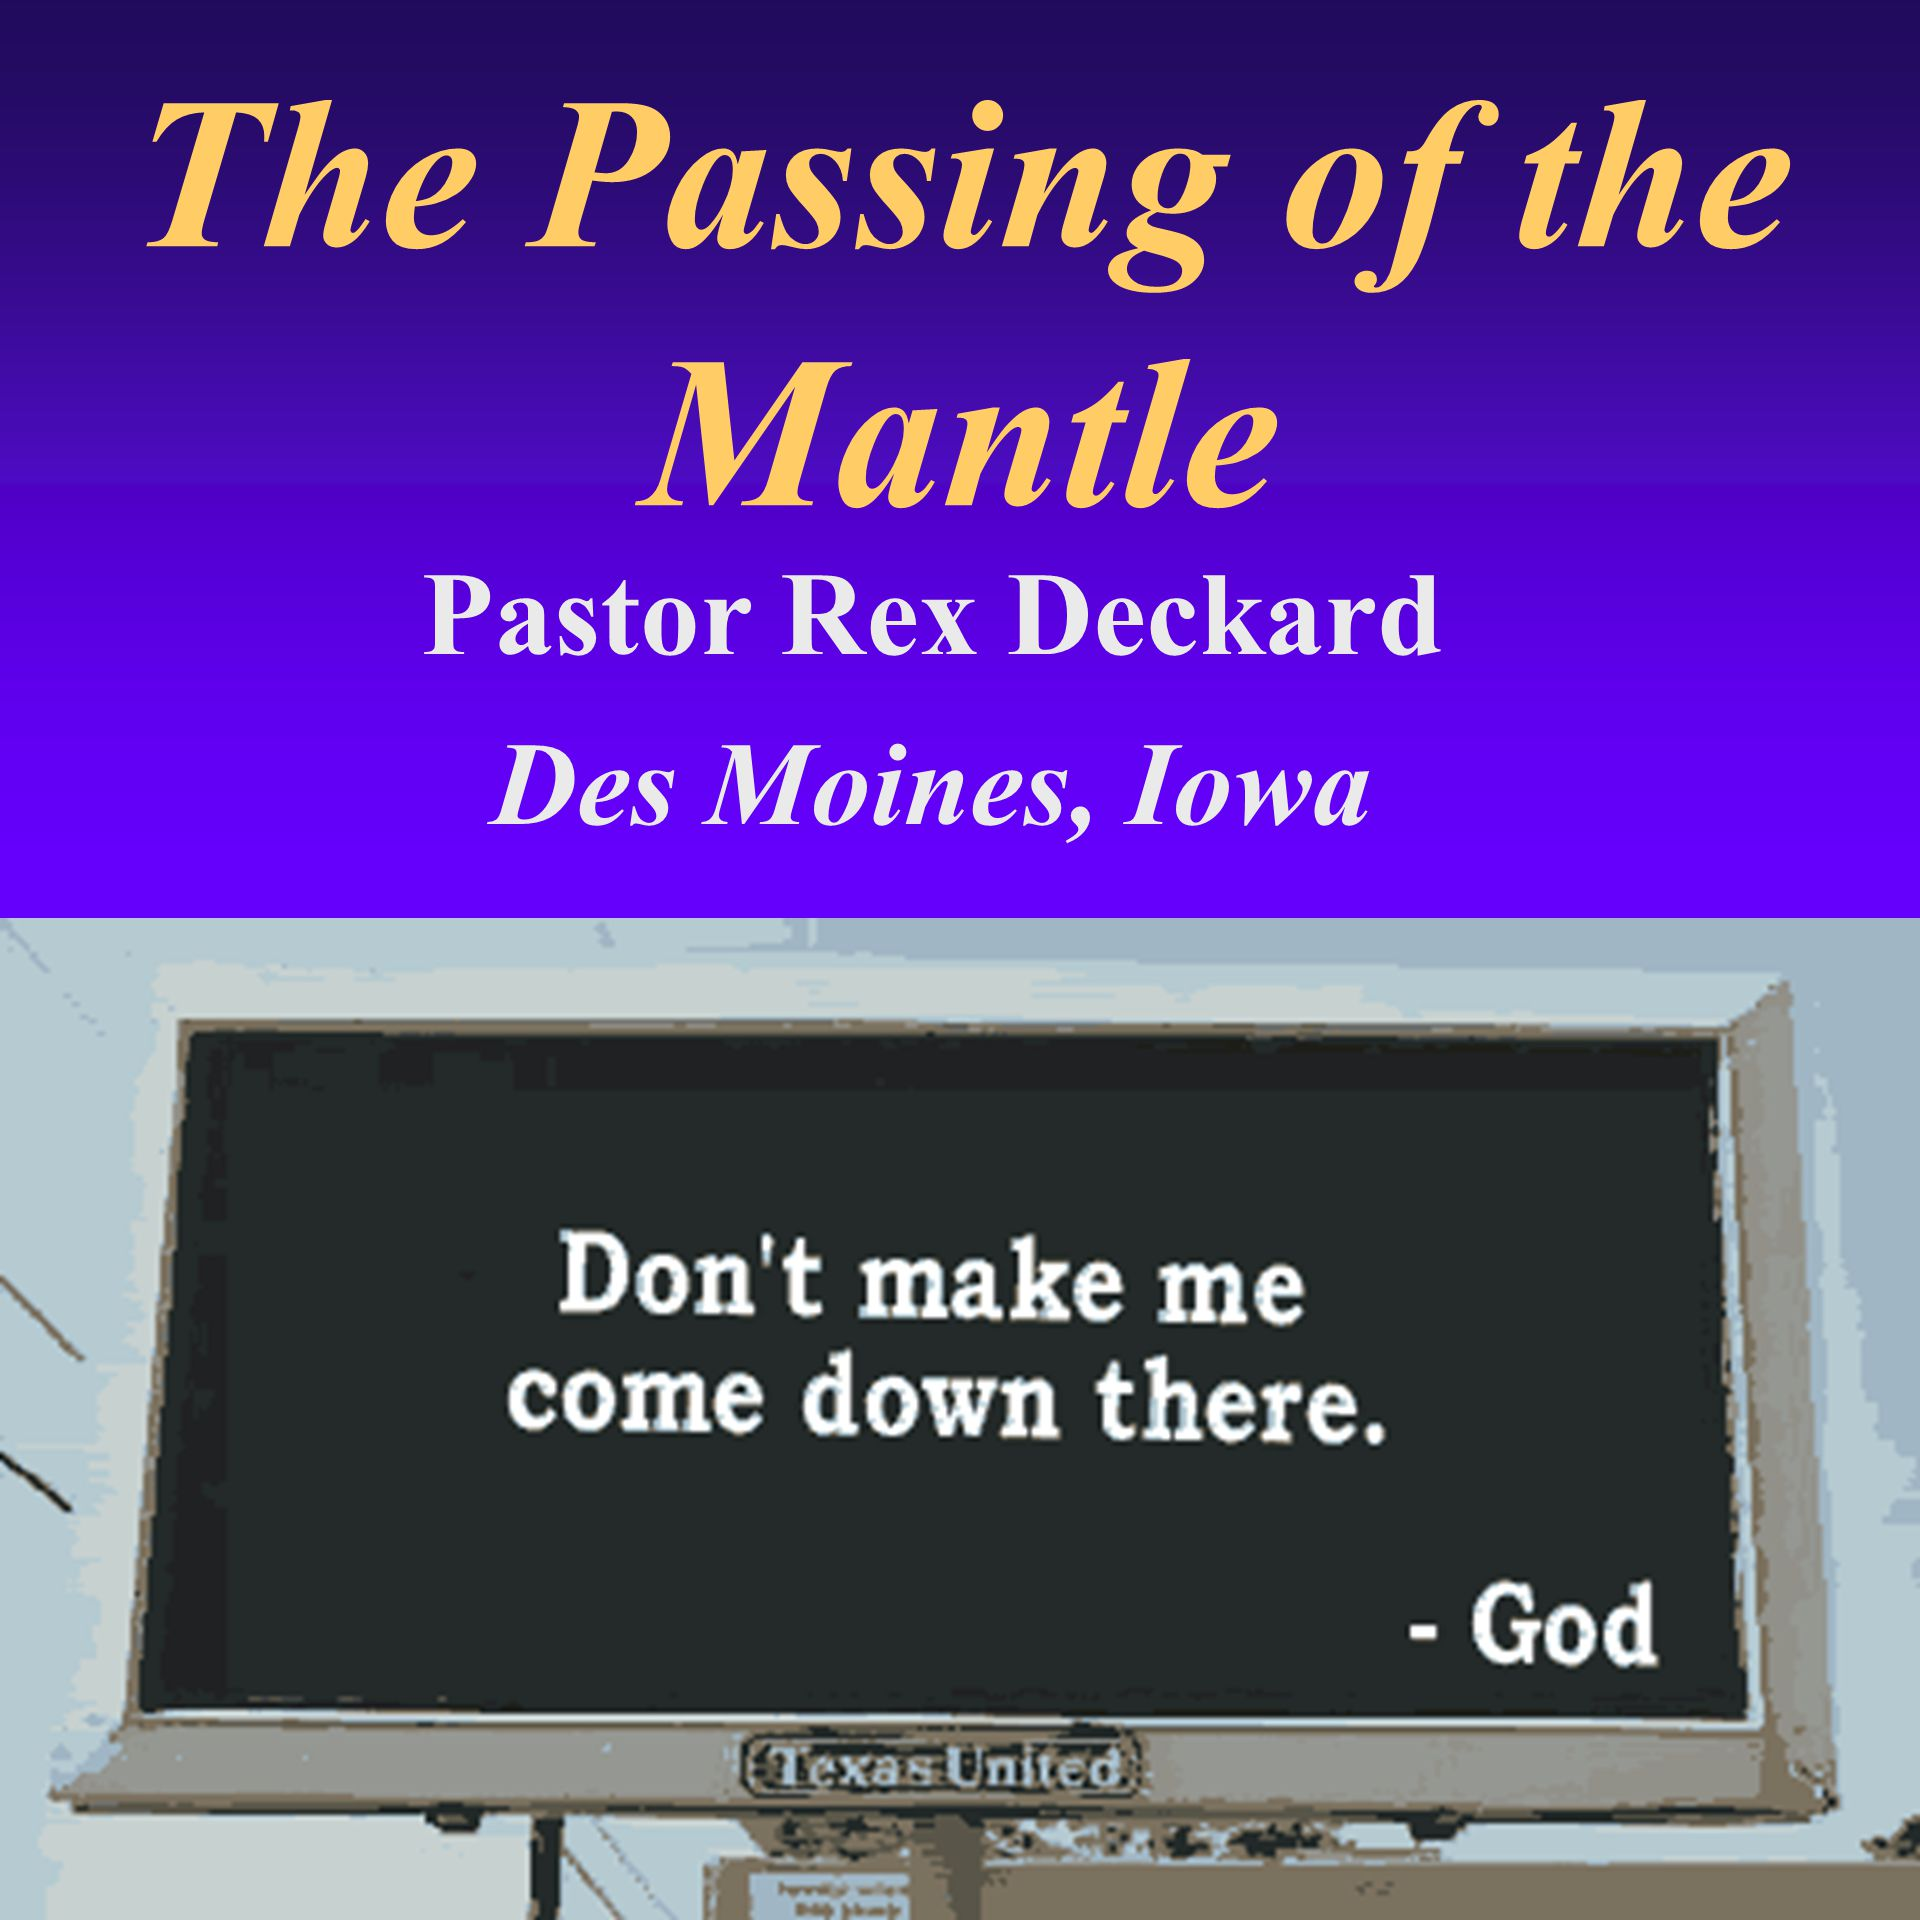 The Passing of the Mantle Pastor Rex Deckard Des Moines, Iowa